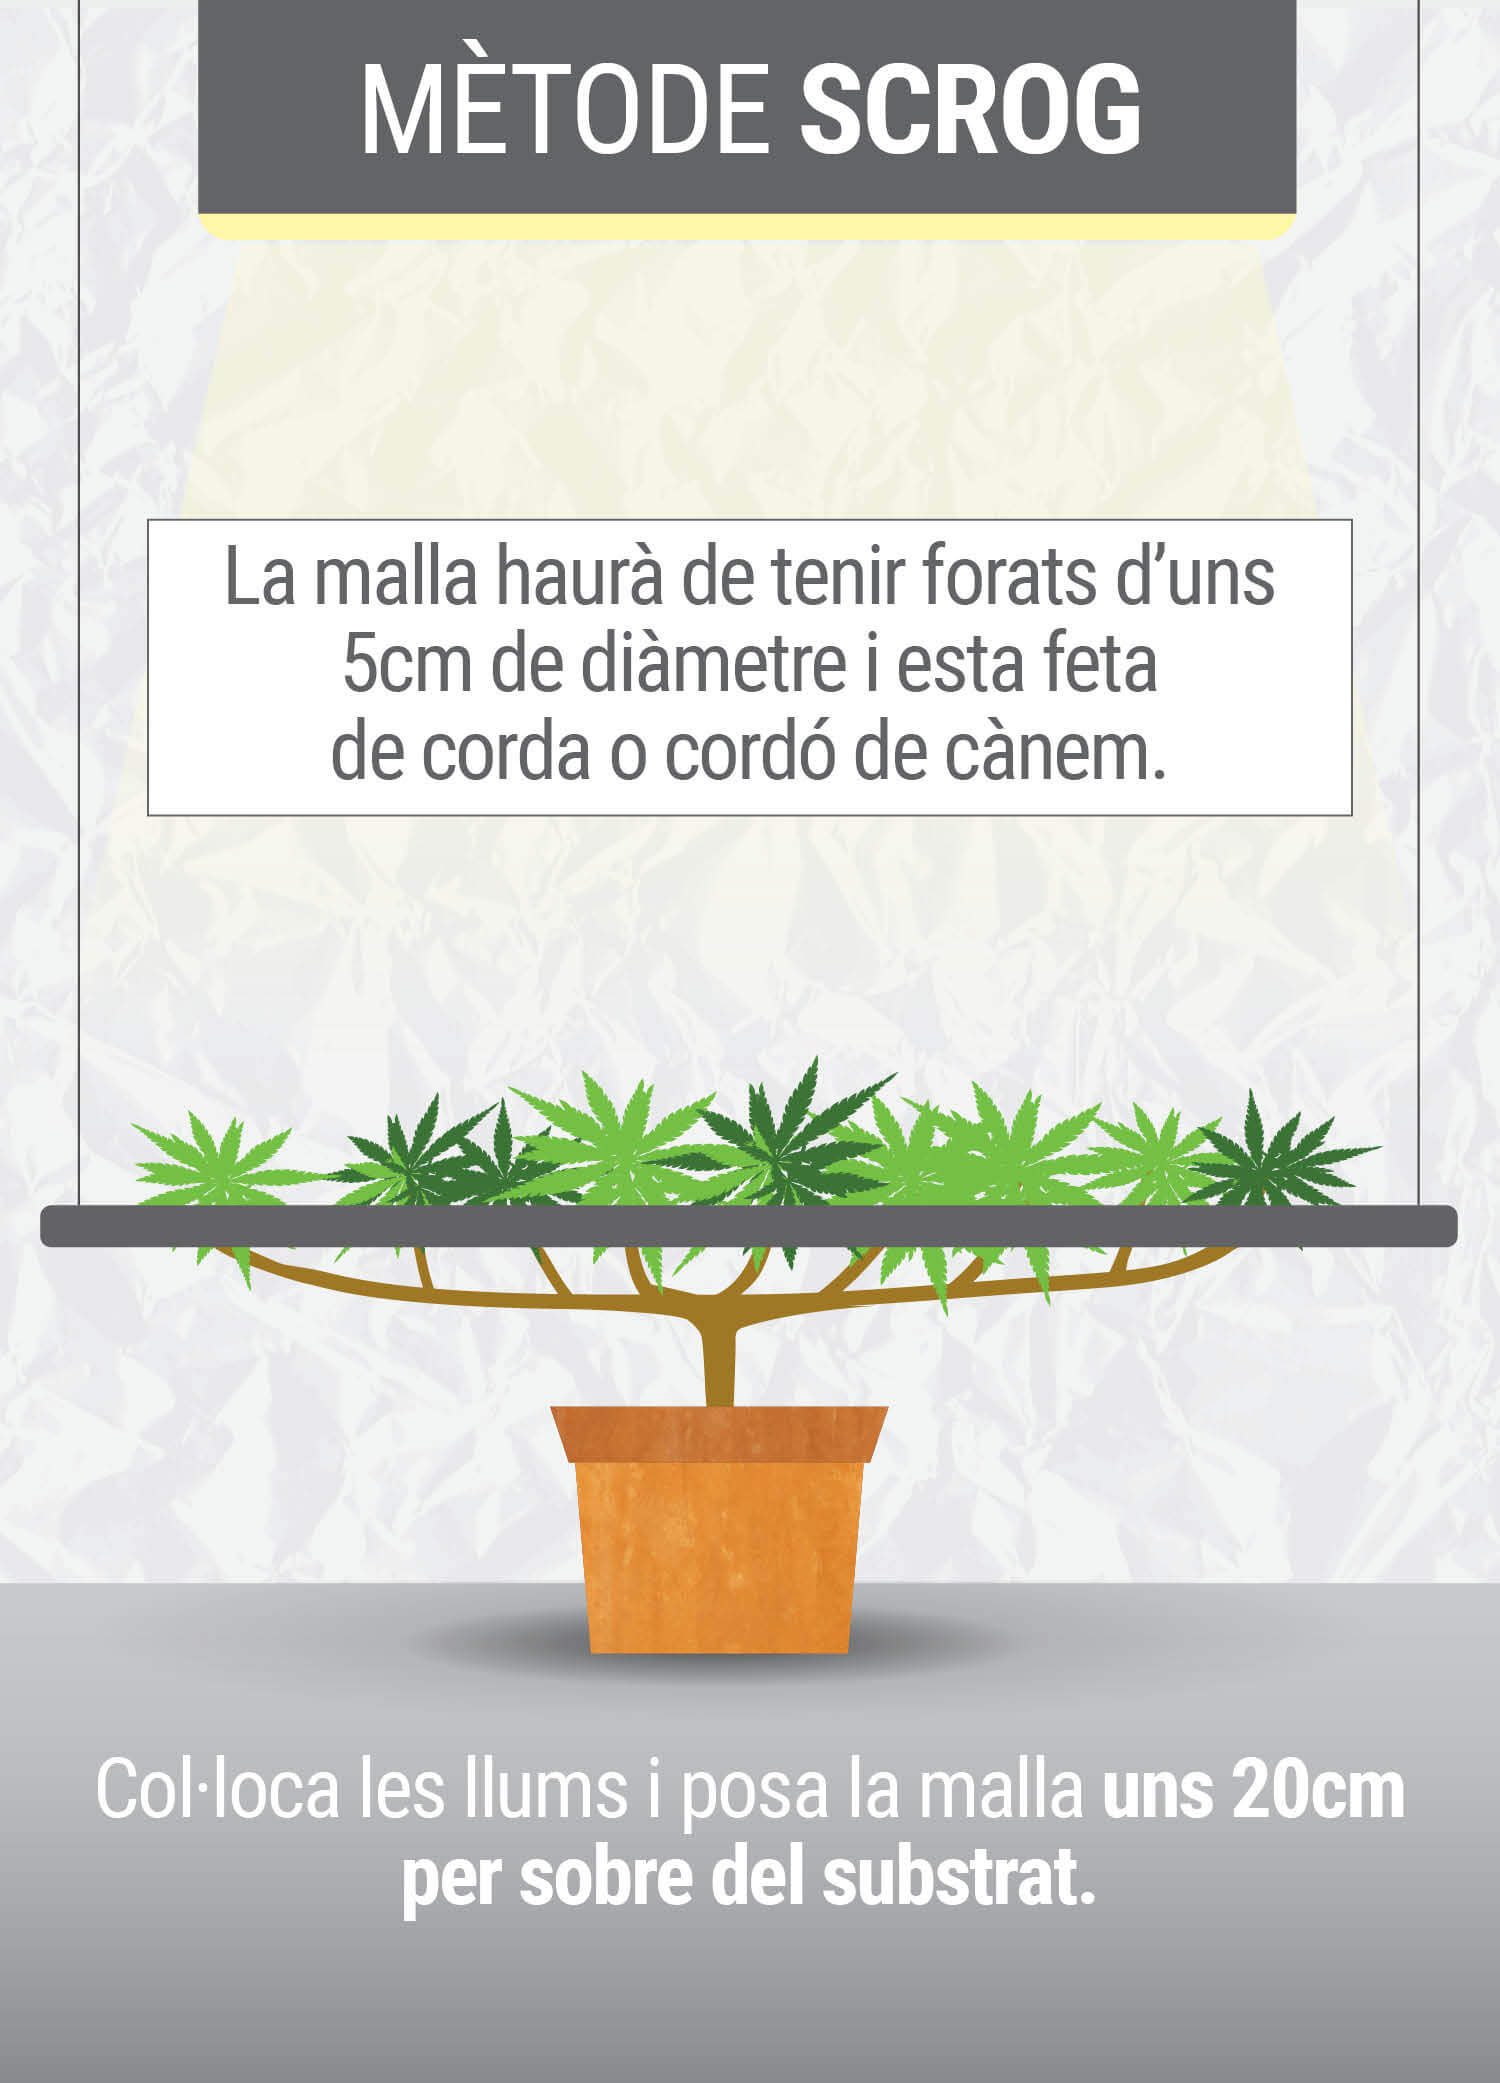 Cultivant cannabis amb el  mètodo SCROG (Screen of Green) Segunda Fase